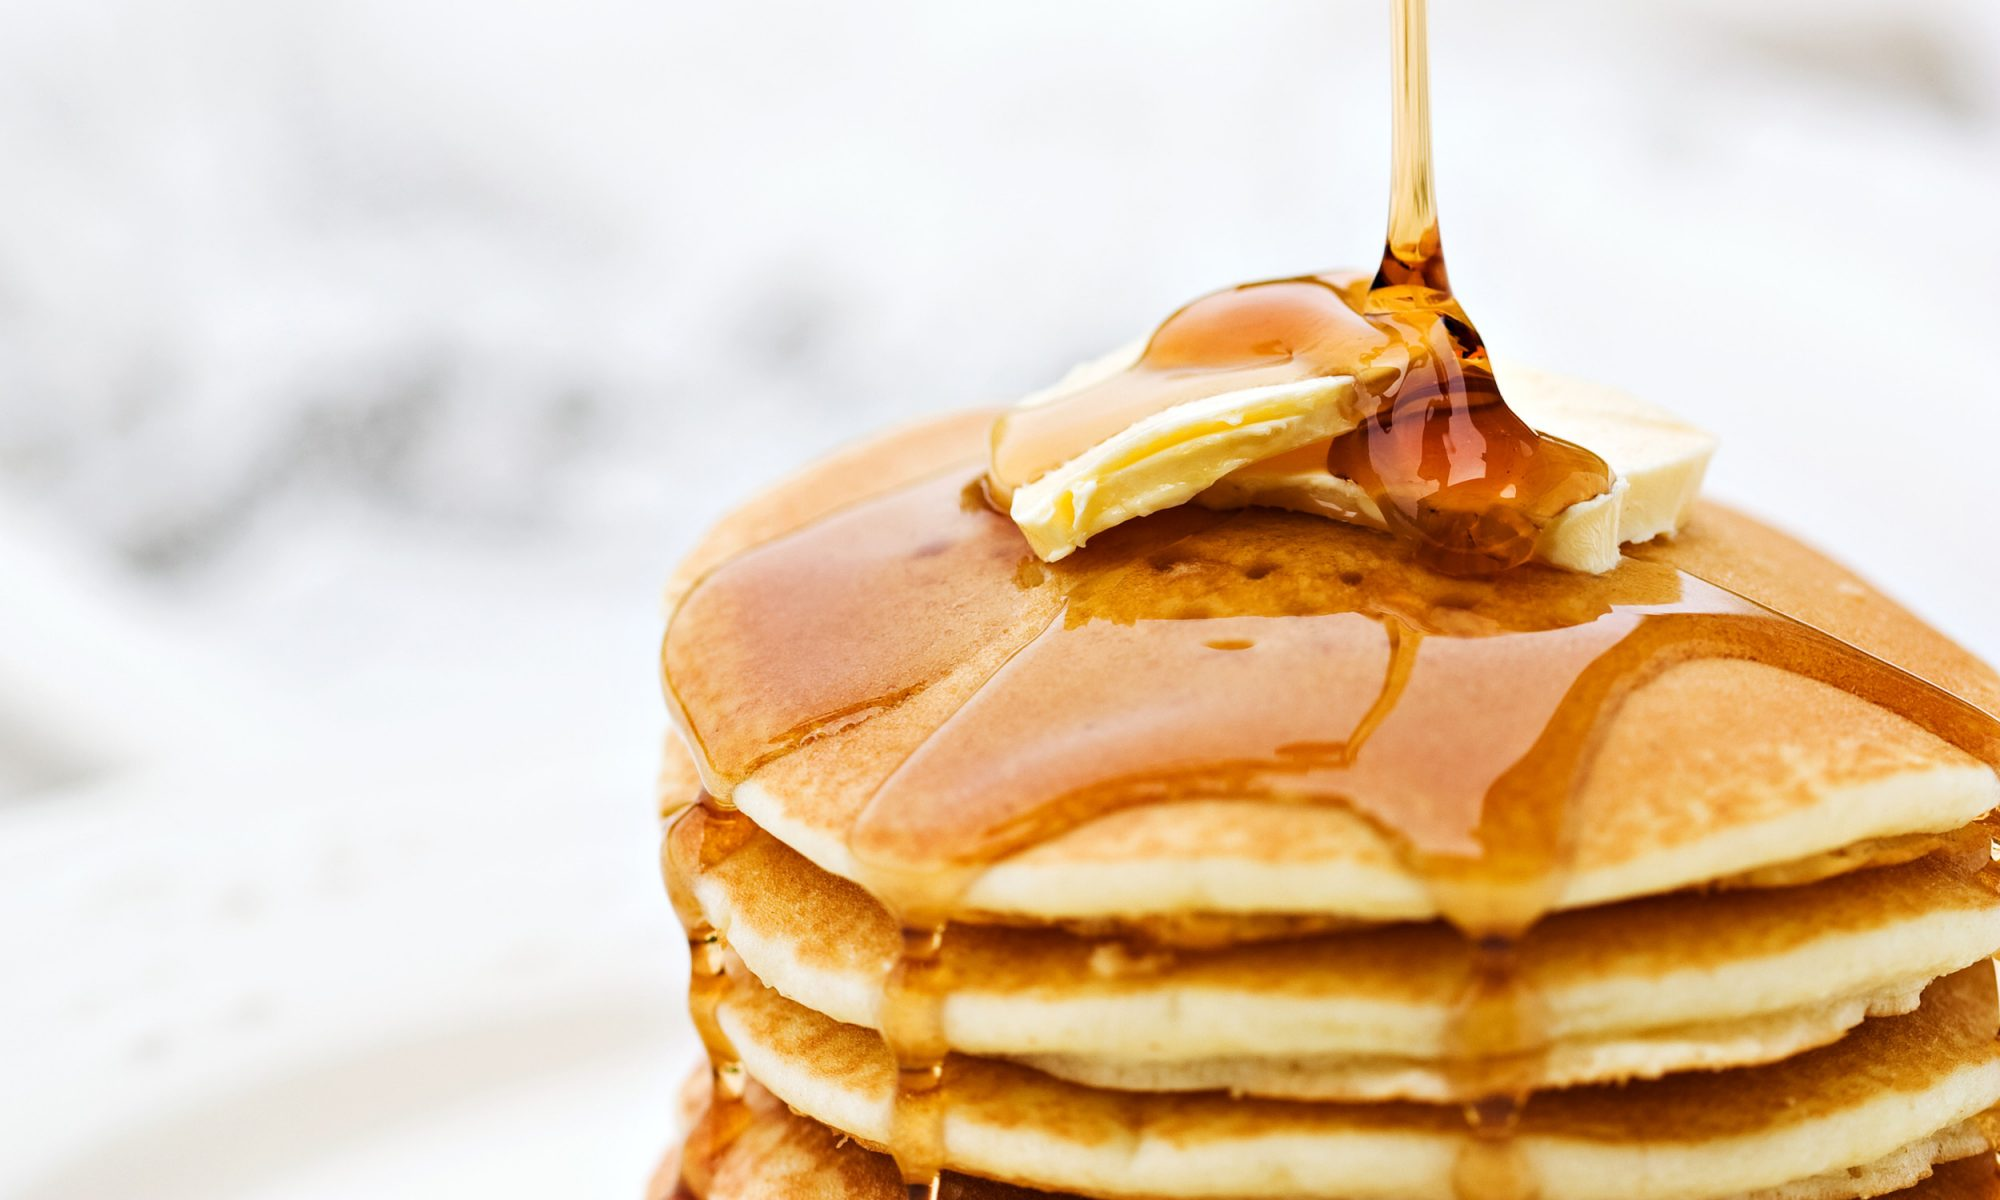 EC: Make Fake Maple Syrup and Thwart Any Shortages